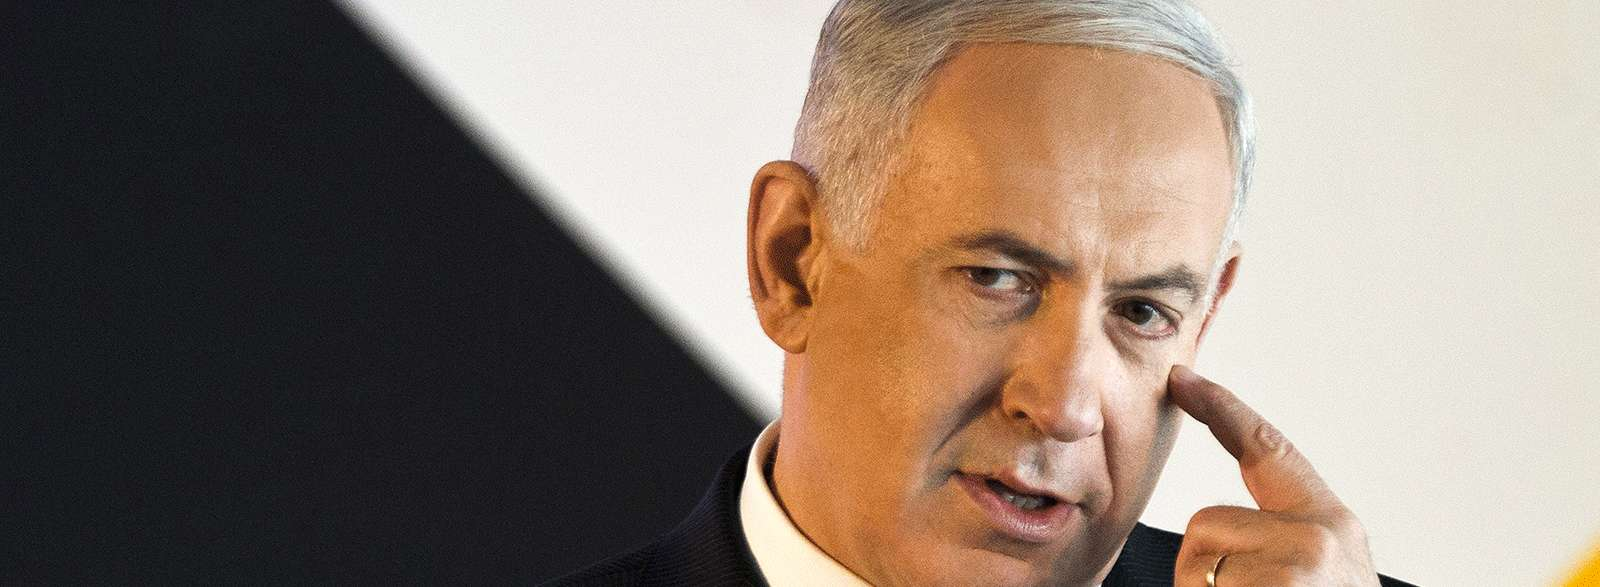 La menace de Netanyahou